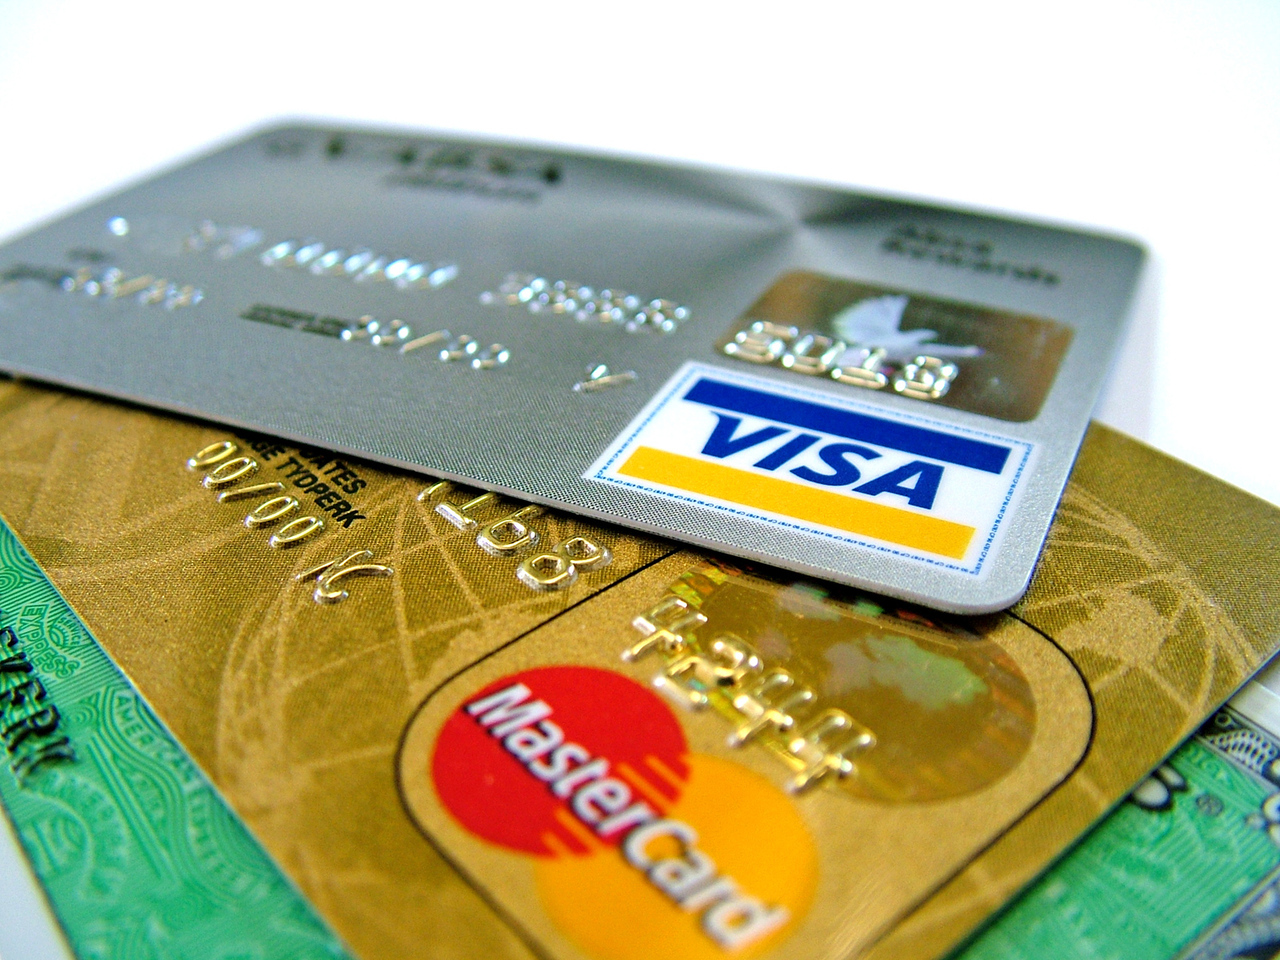 Bad credit card policy oradell nj cpa blog some business owners are penny wise and pound foolish with their credit and debit card policies even worse some do not even accept credit cards reheart Image collections